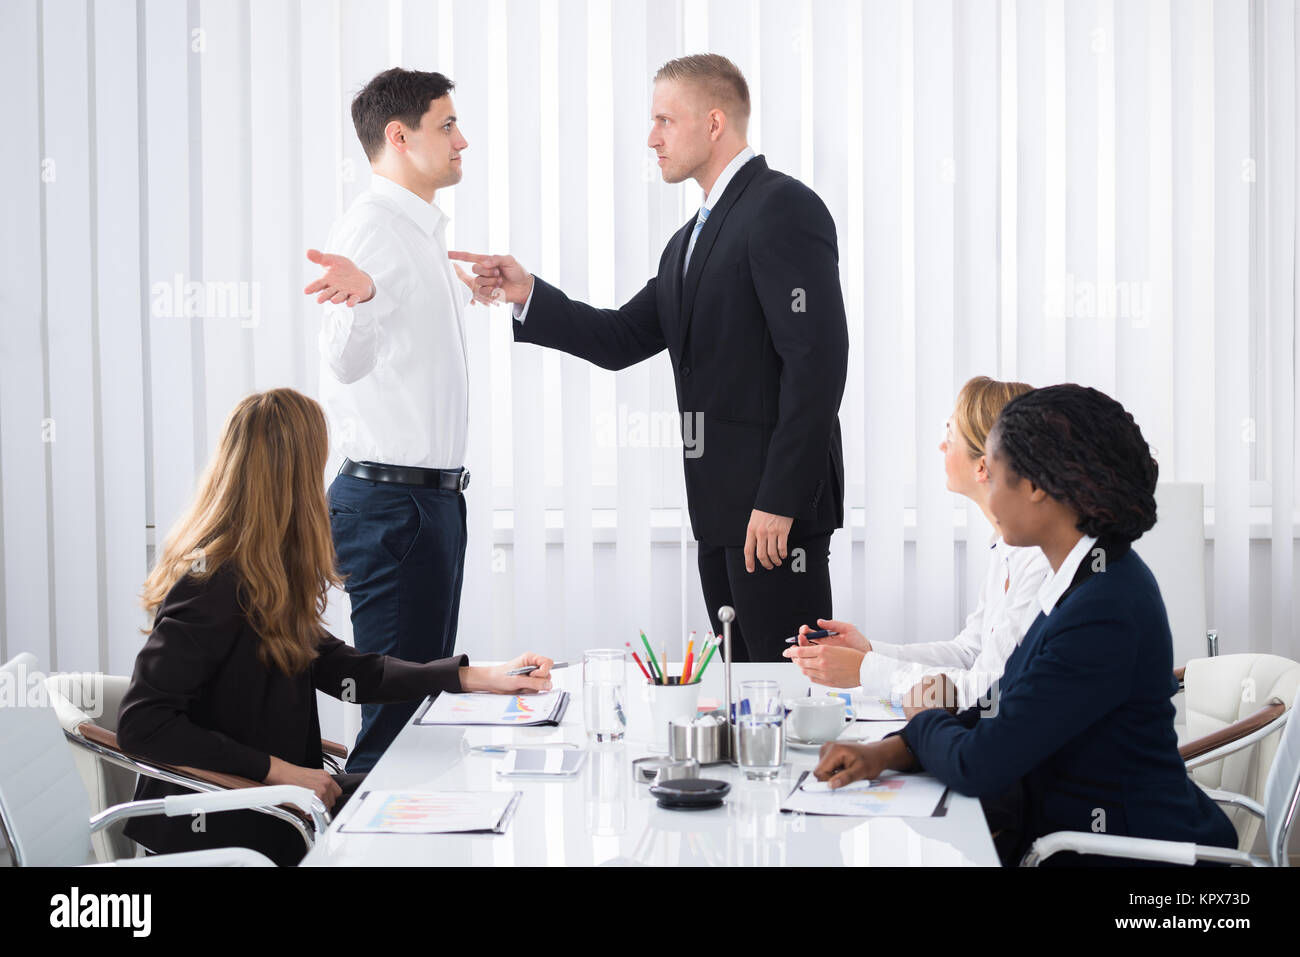 Businessman Blaming His Colleague In Meeting Stock Photo